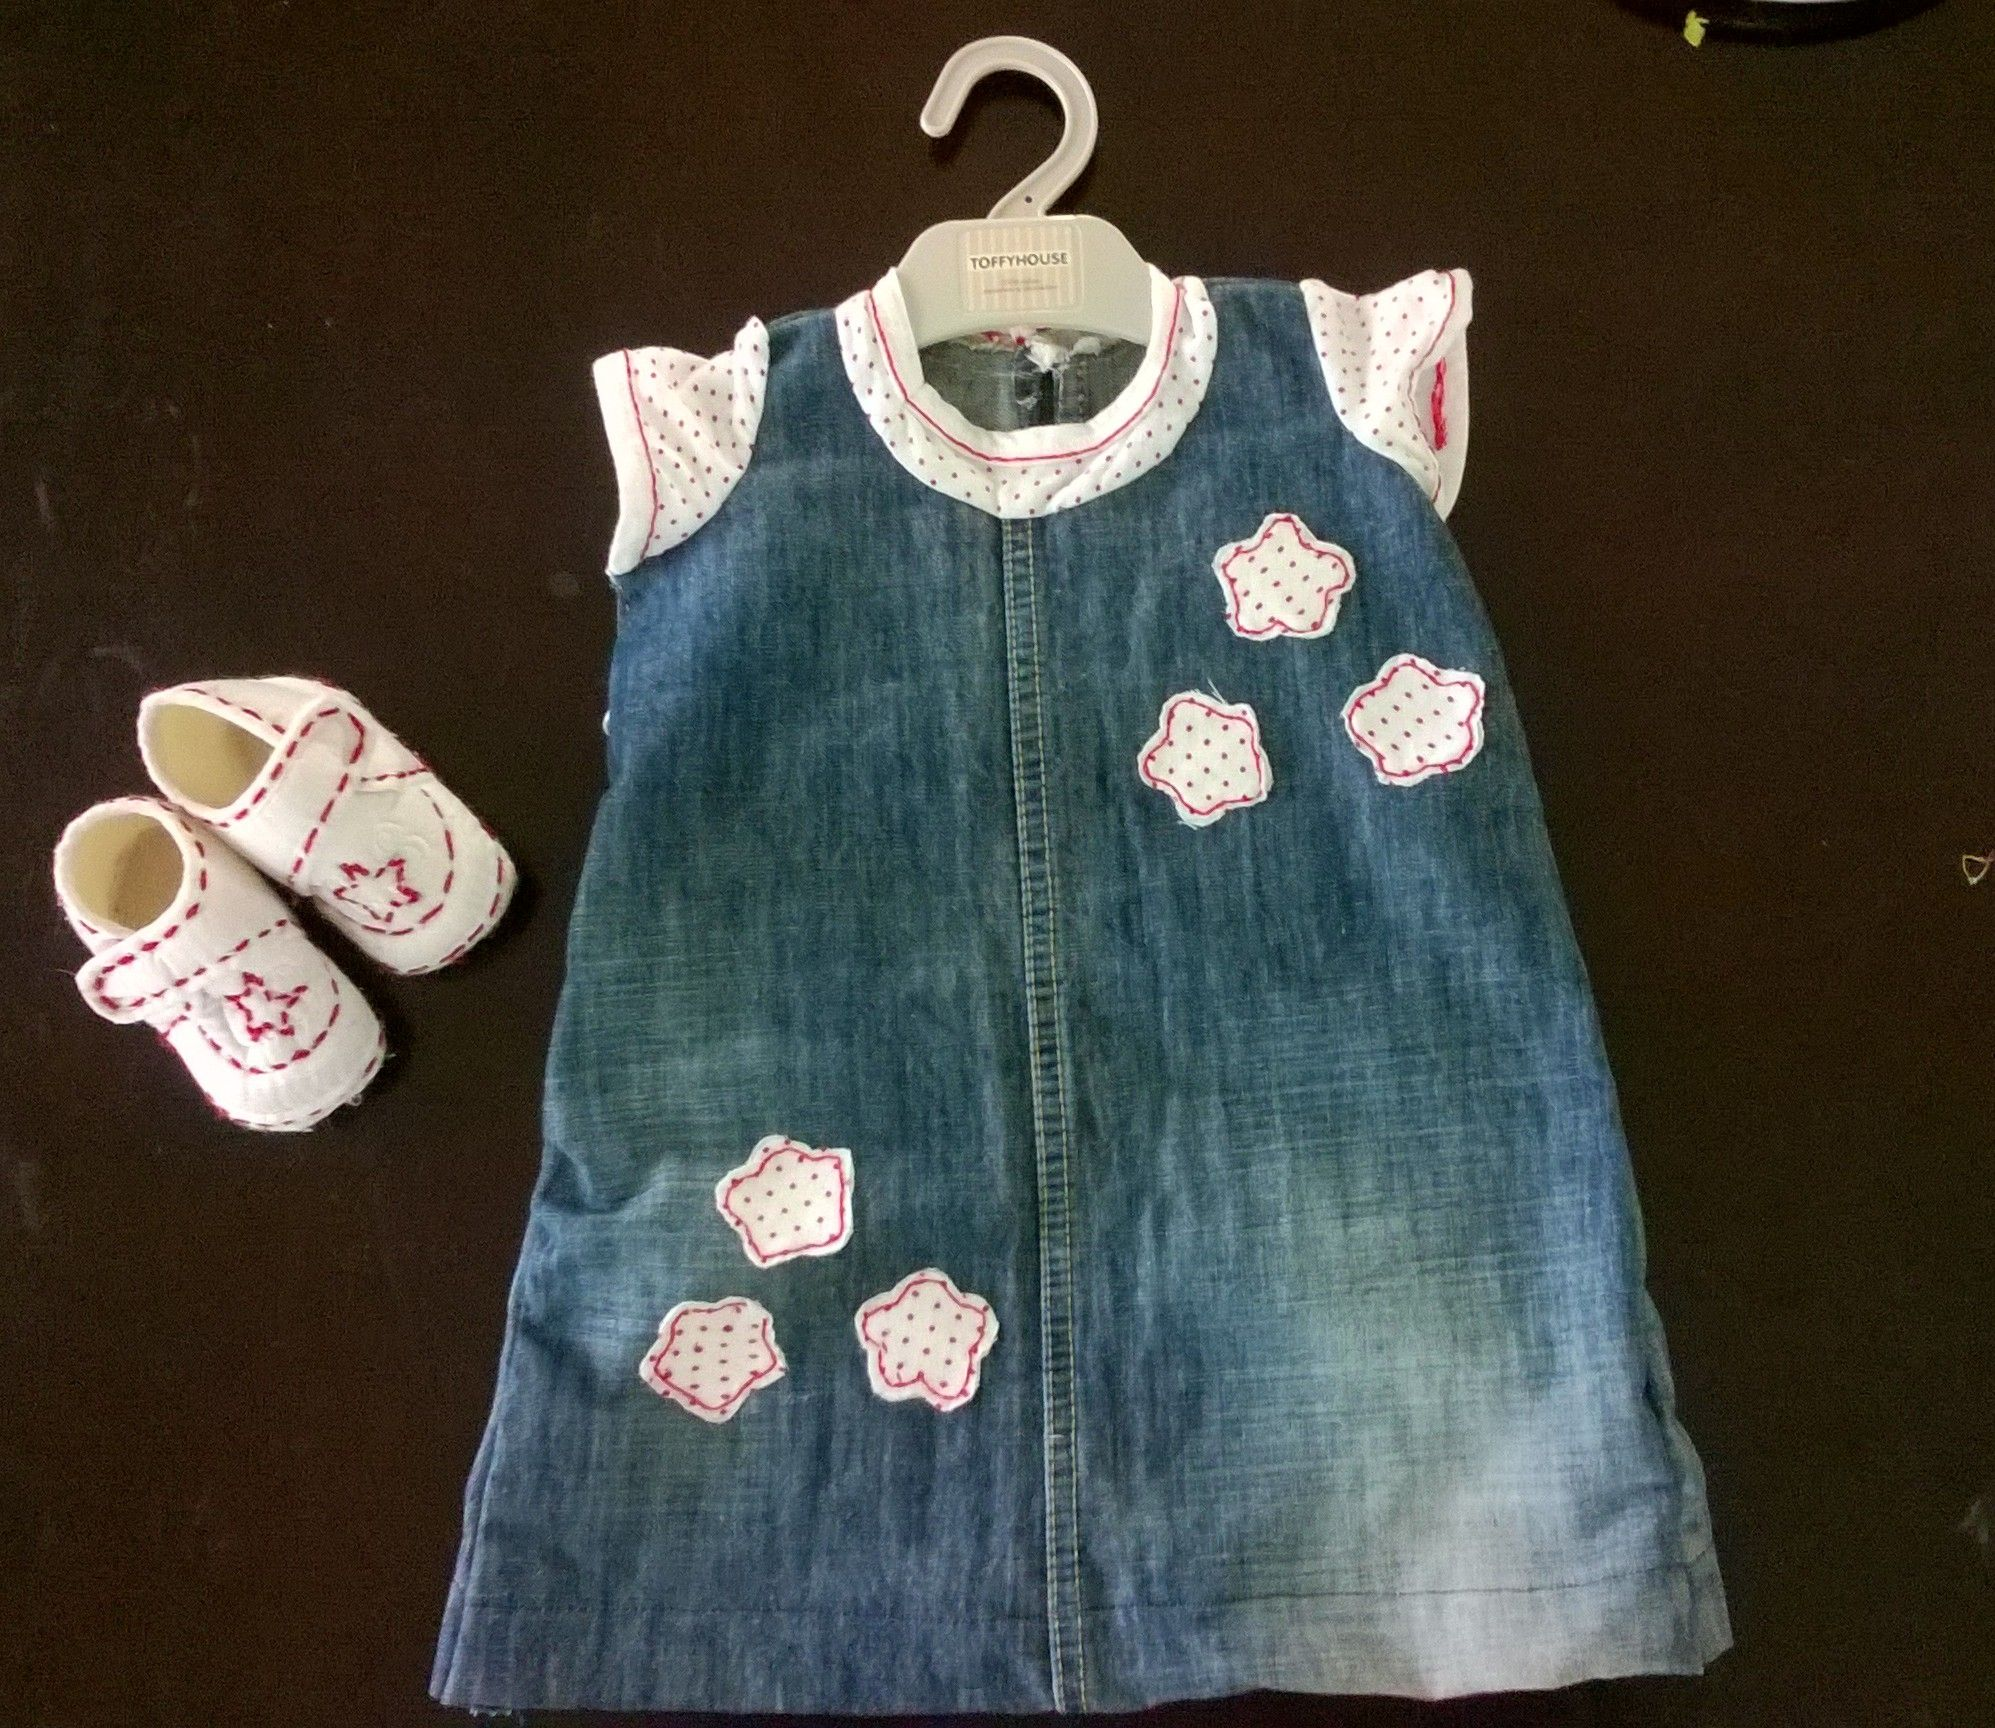 da0fa7e1e192 Cute baby dress with applique work made from old jeans n t-shirt ...